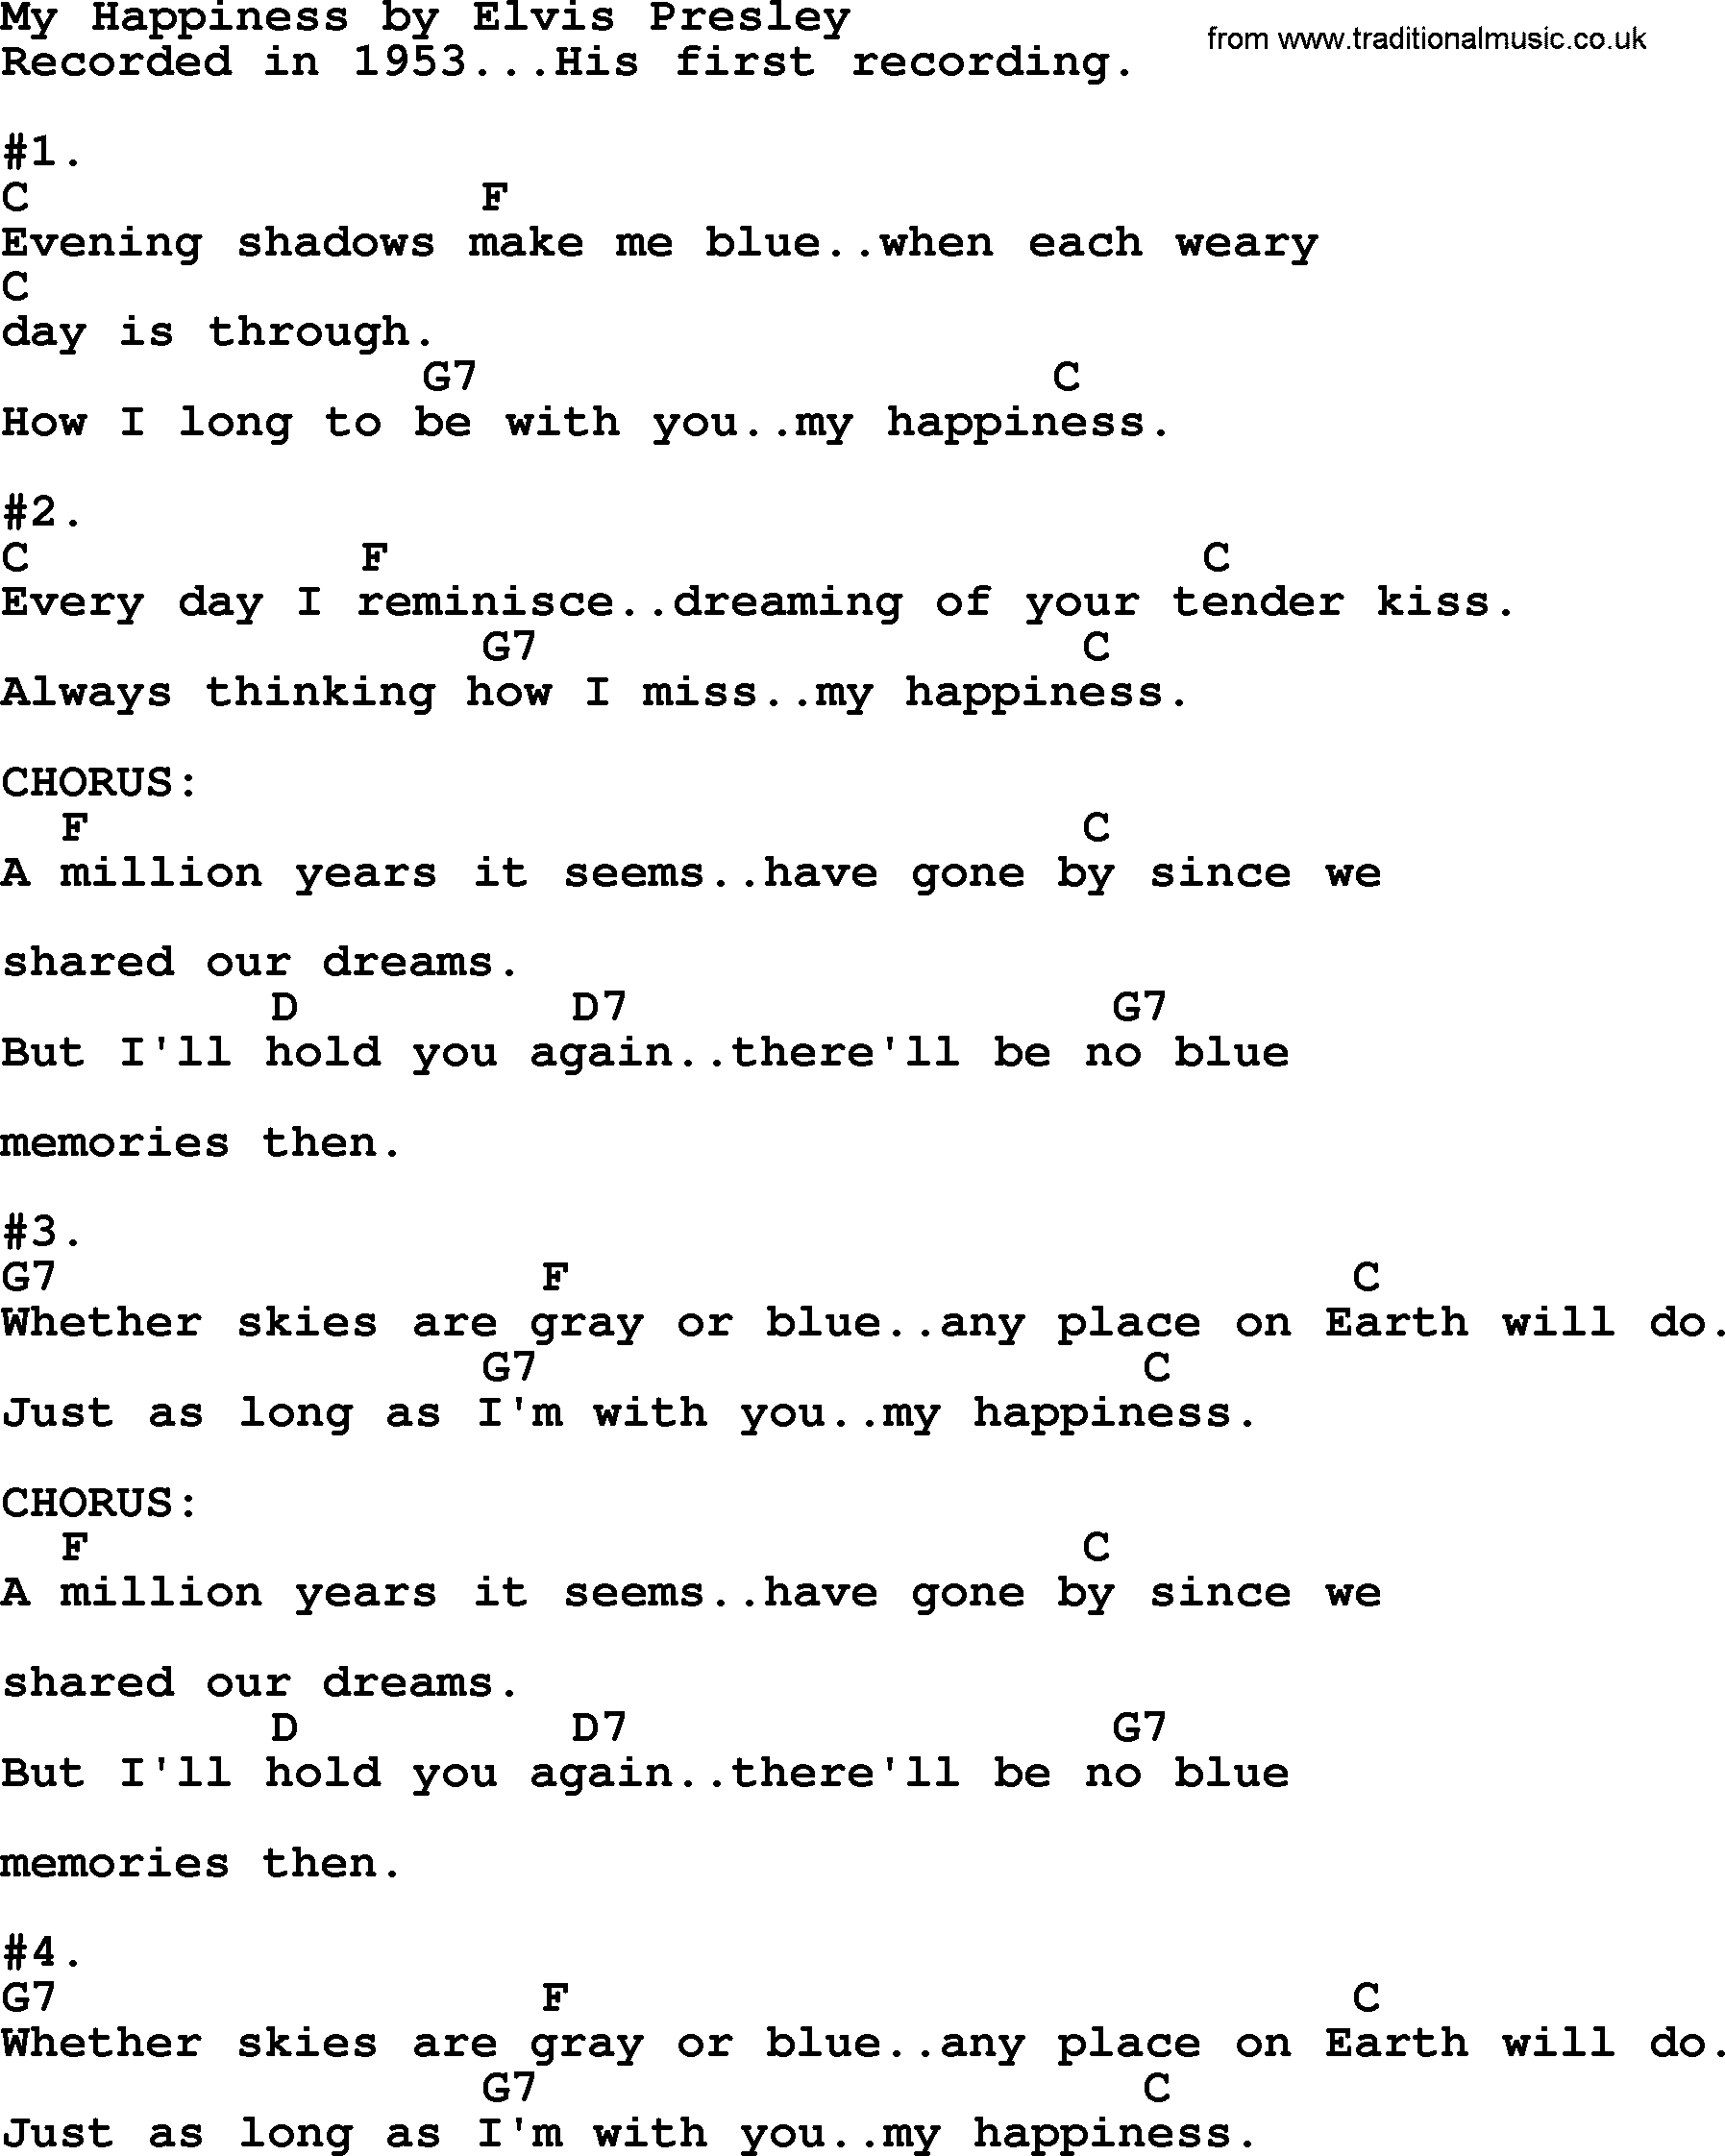 My Happiness By Elvis Presley Lyrics And Chords